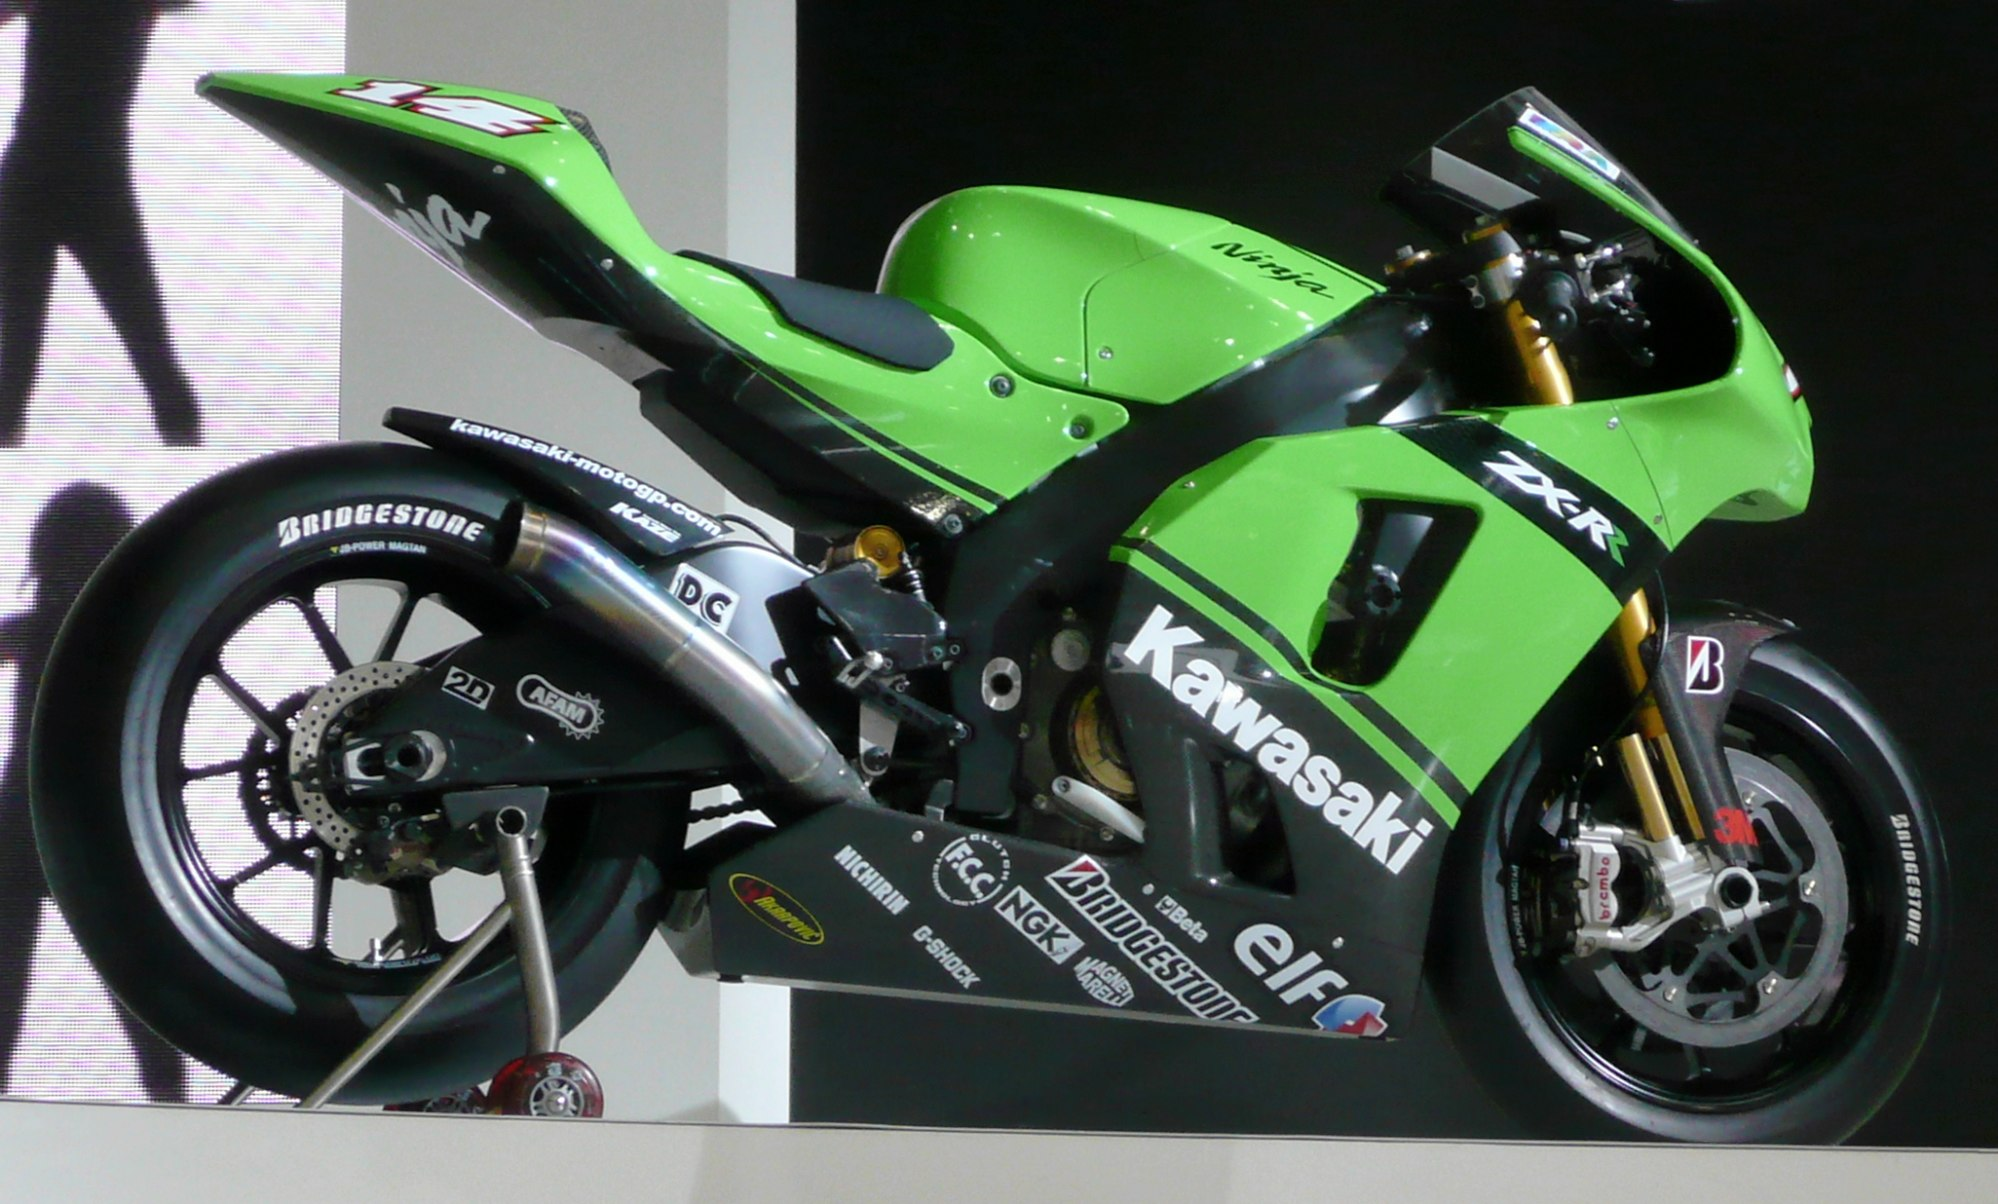 Kawasaki Ninja Zx Rr The Complete Information And Online Sale With